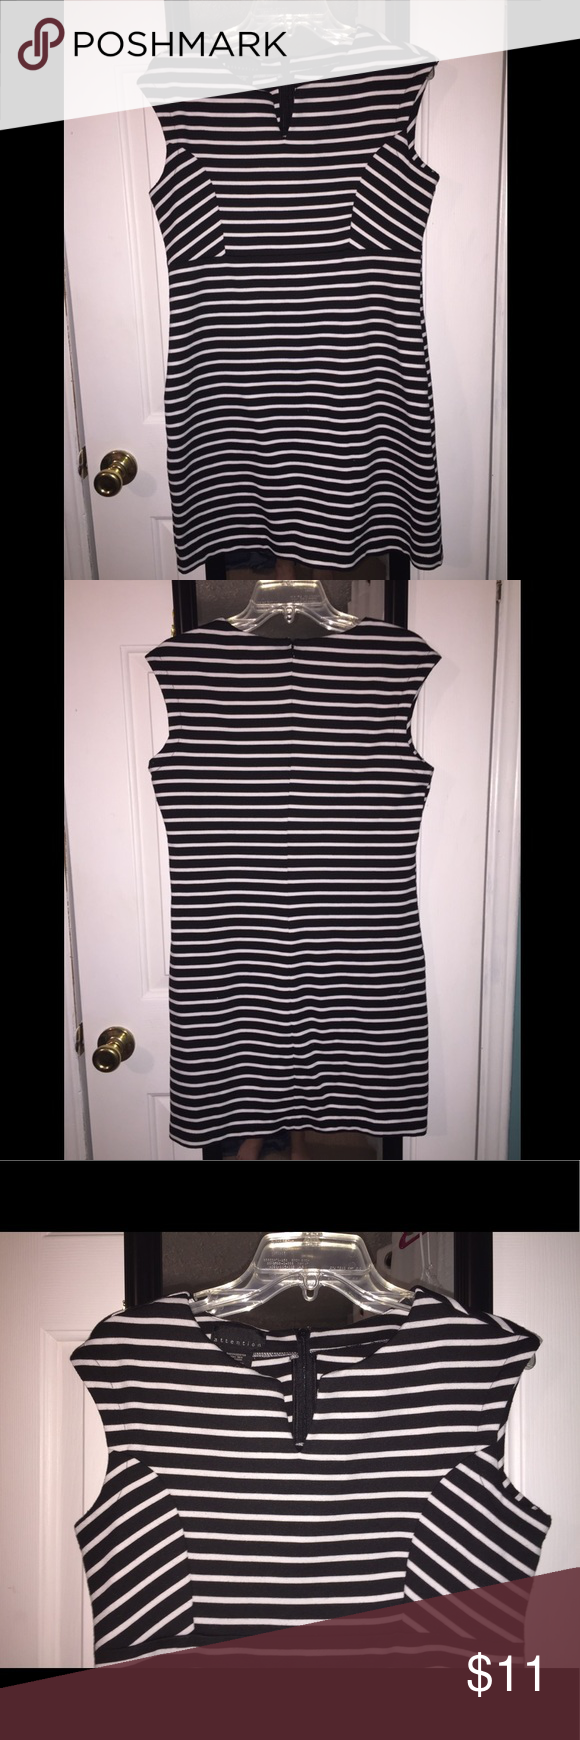 Attention Striped Dress Attention Striped Black & White Dress. Size medium. Has a tiny stain on the inside near the neck and it's missing the hook on the back, zips all the way up so you can't tell. Both of these flaws are pictured. Otherwise in very good condition Attention Dresses Midi